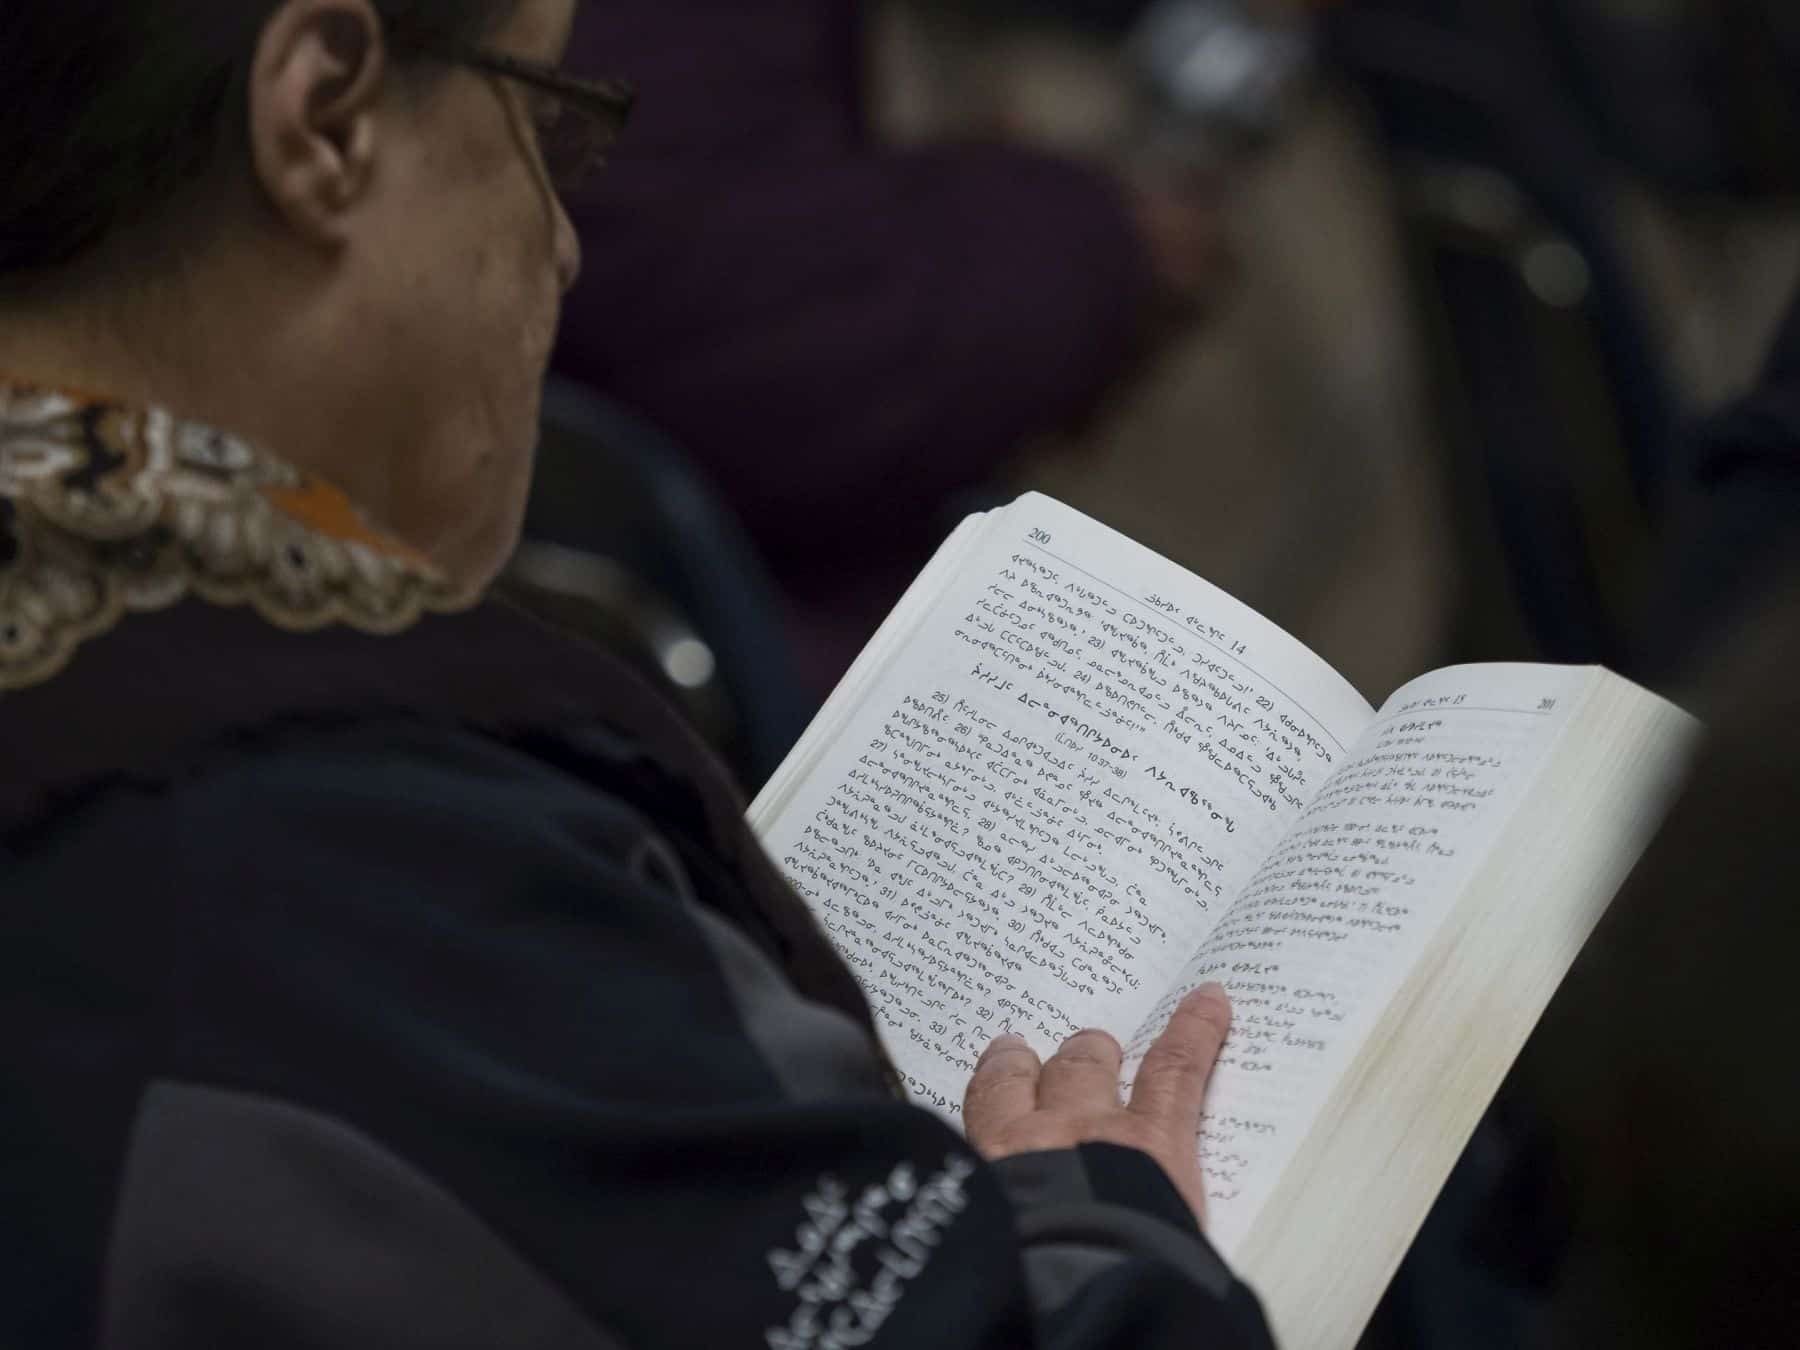 READING THE BIBLE IN INUKTITUT